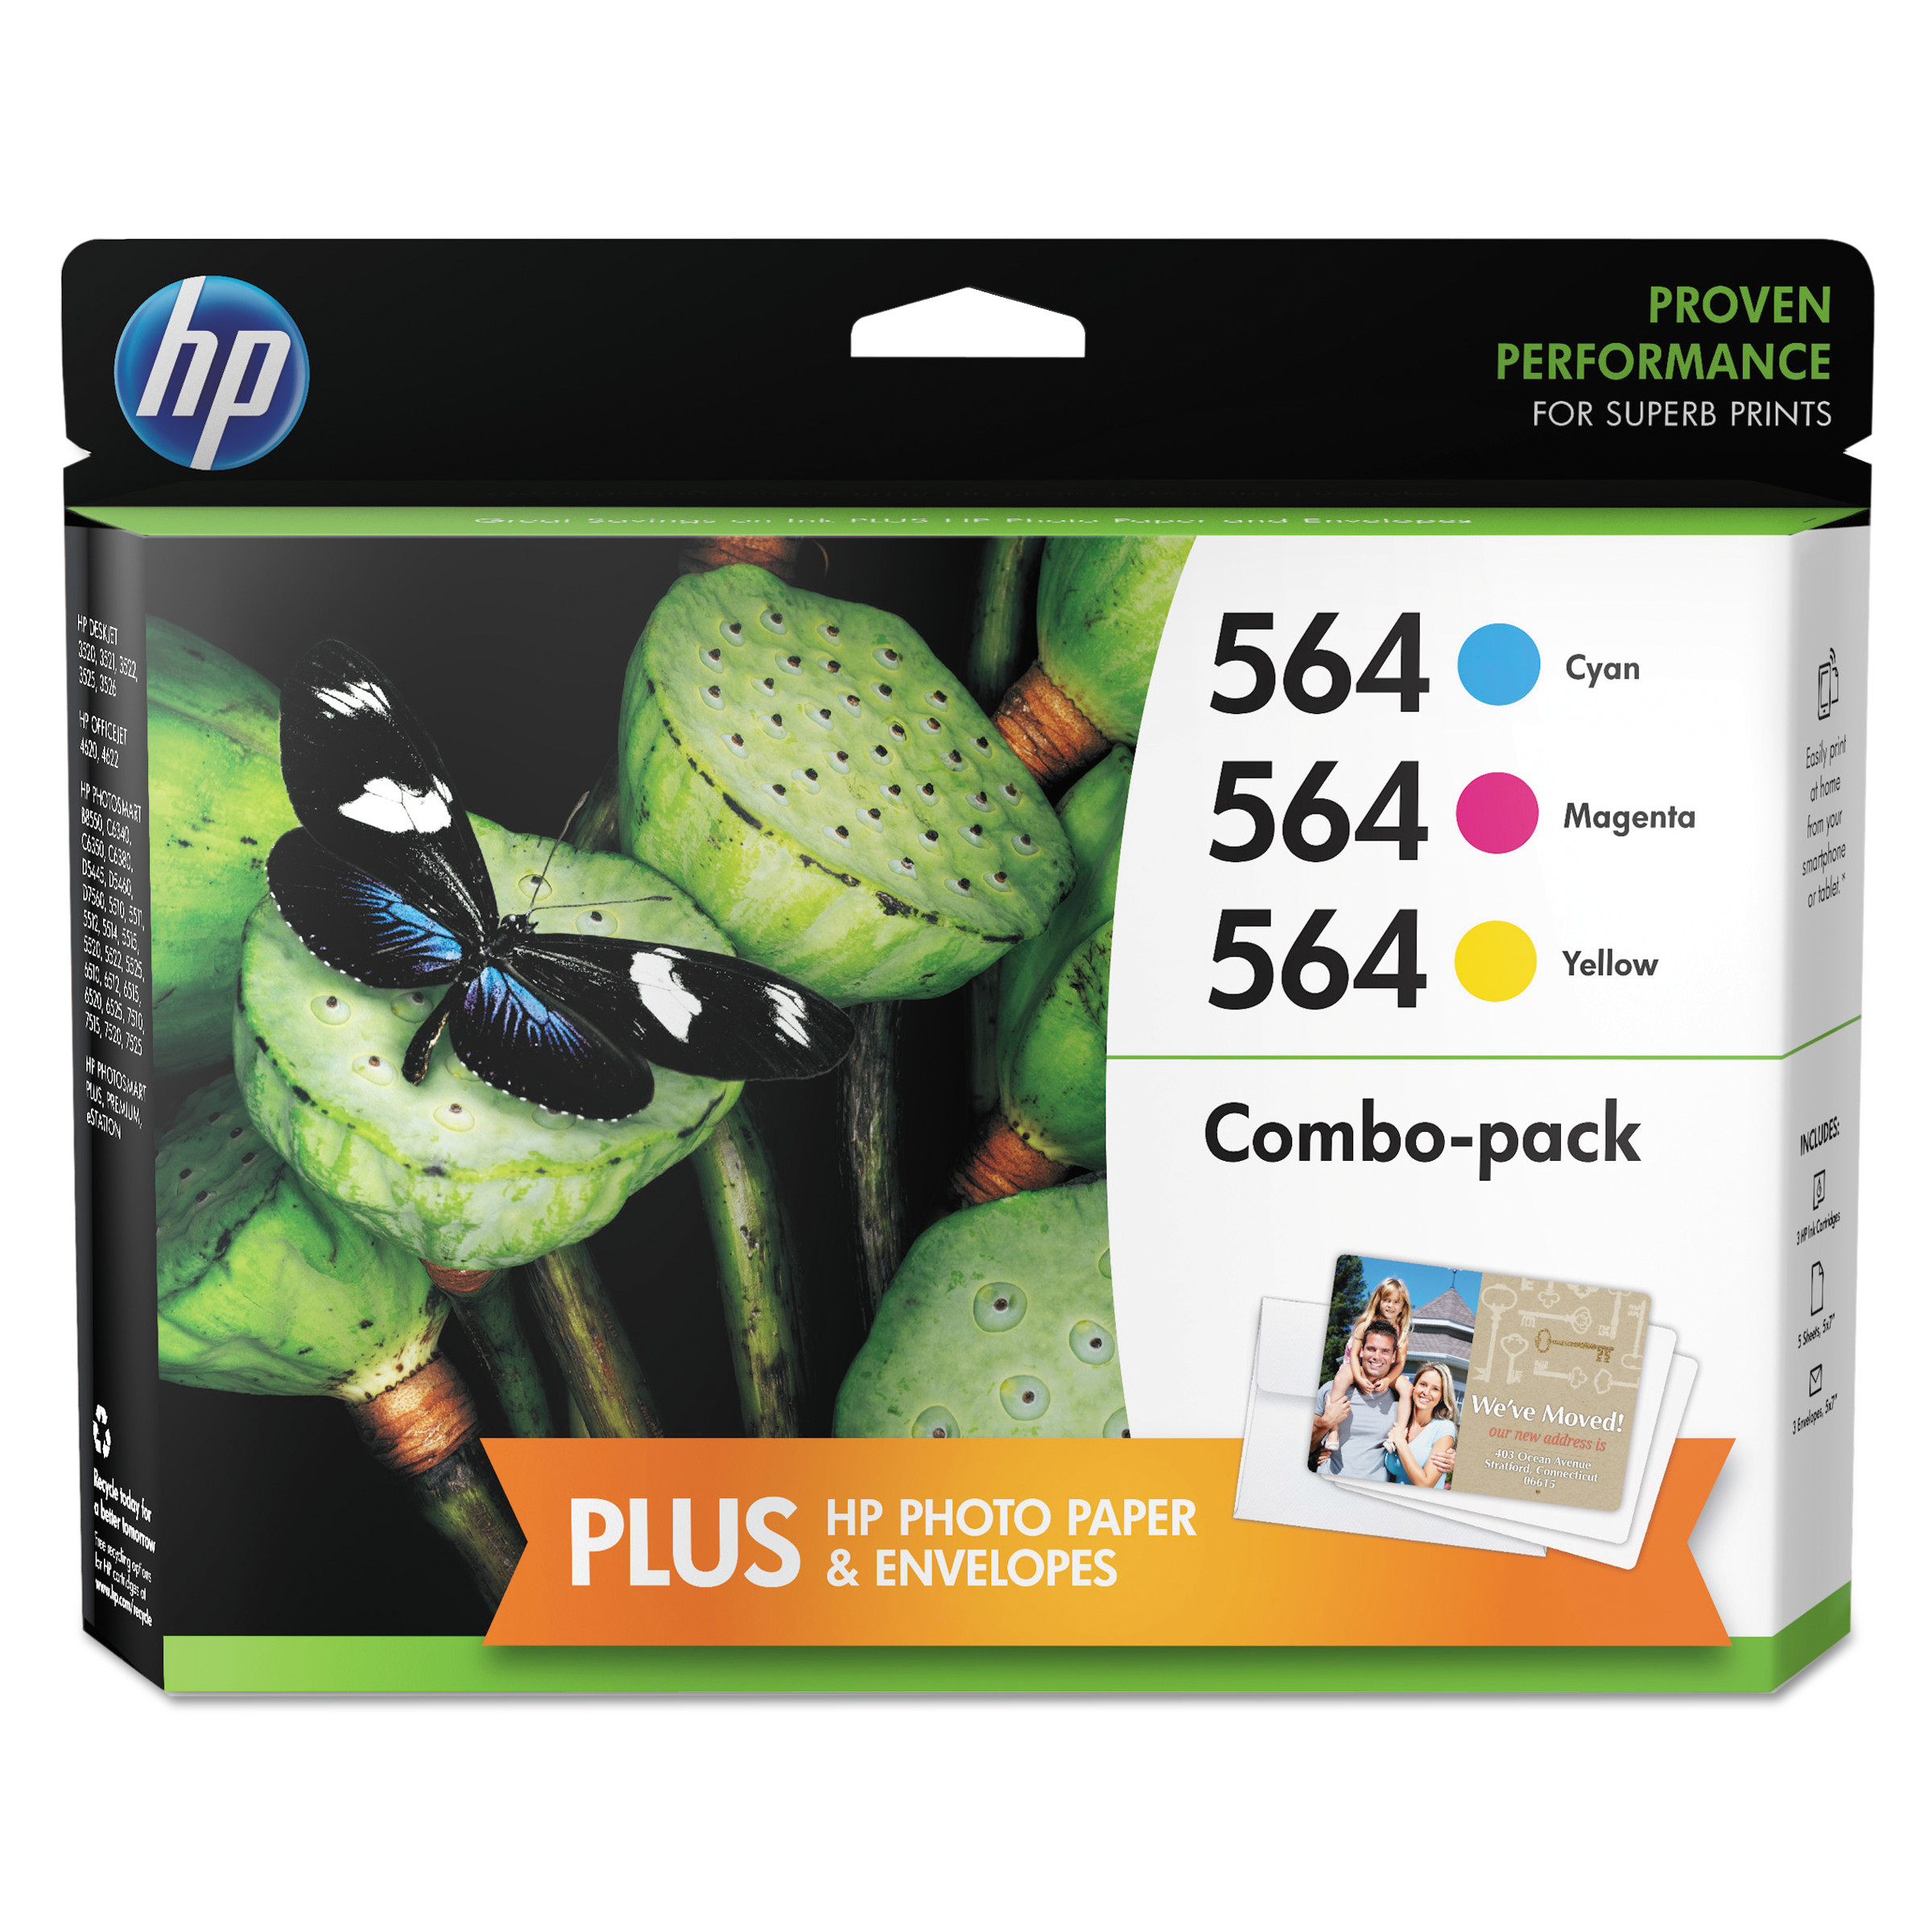 HP HP 564 (N9H57FN) Cyan, Magenta, Yellow Original Ink Cartridge